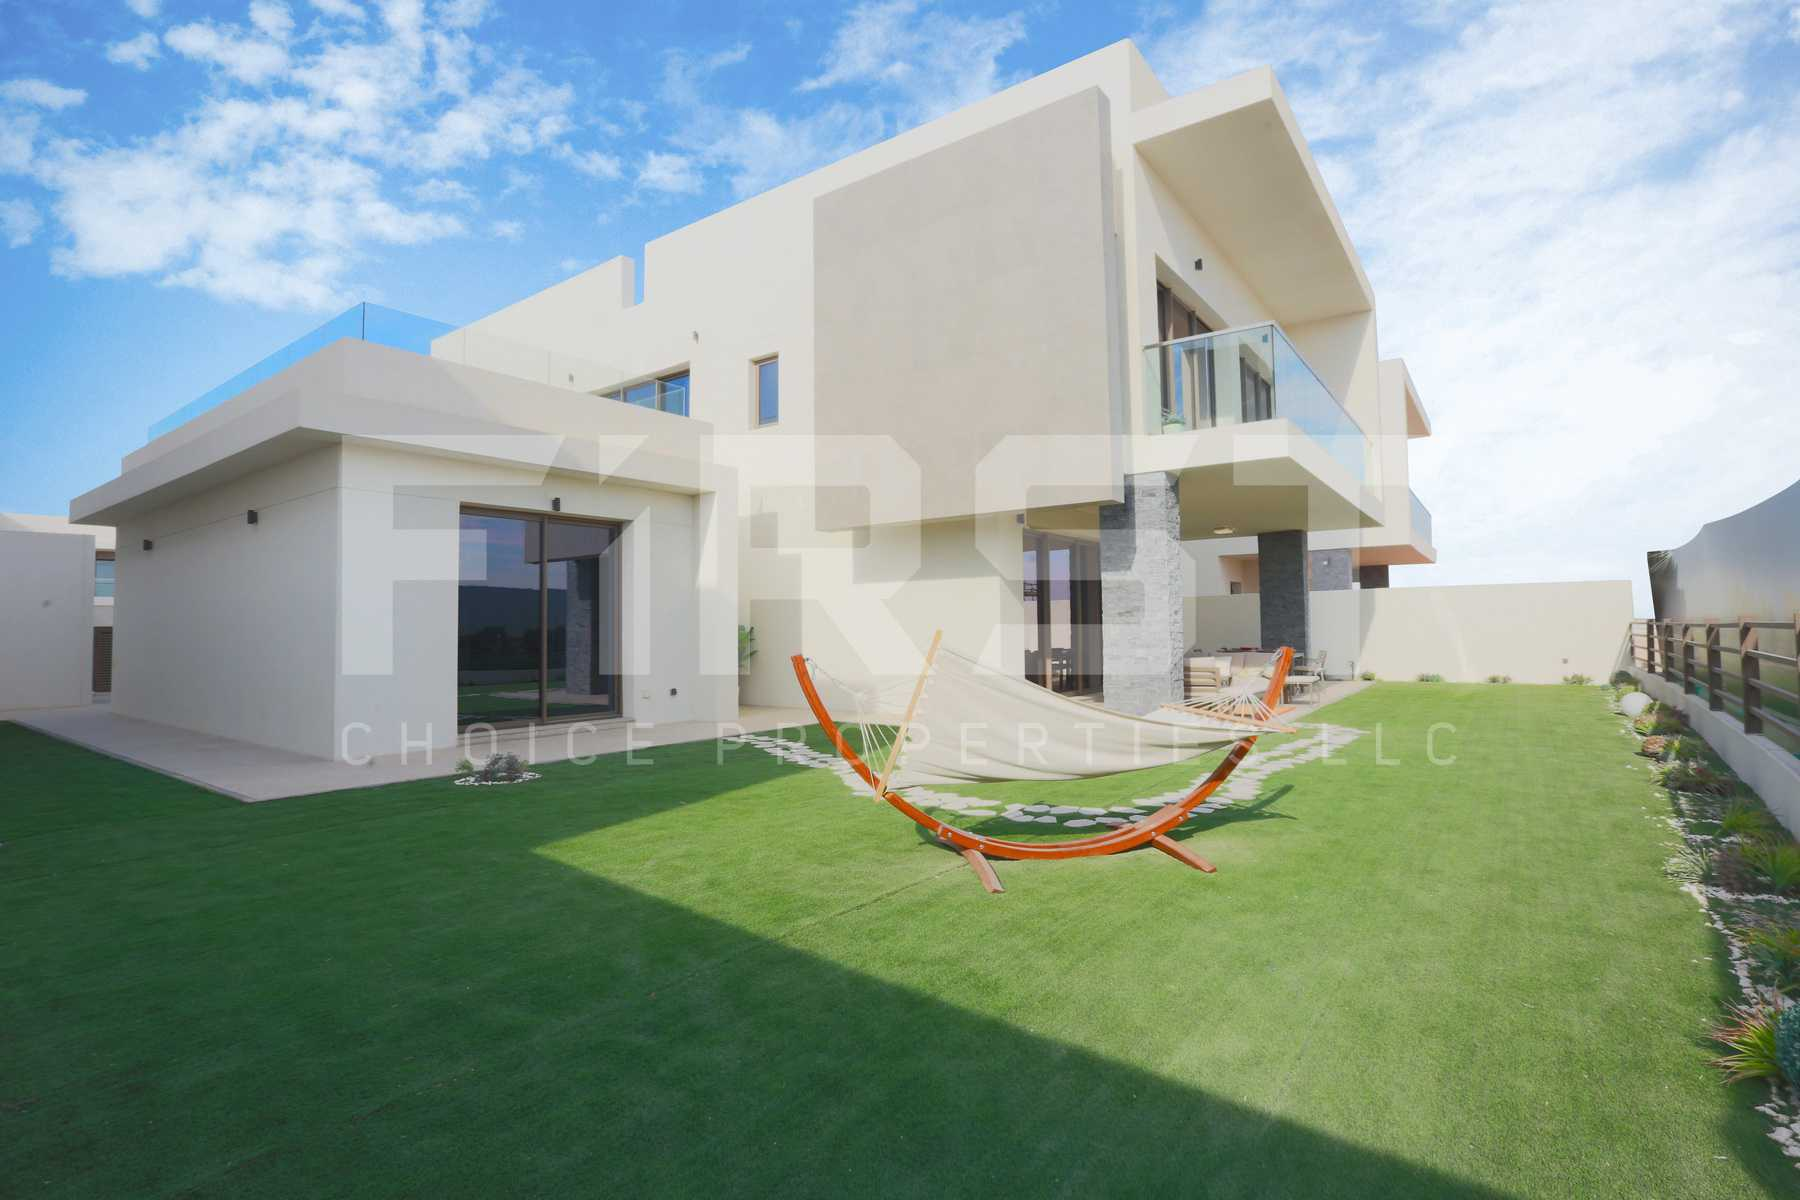 External Photo of 4 Bedroom Villa Type 4F in Yas Acres Yas Island Abu Dhabi UAE (8).jpg